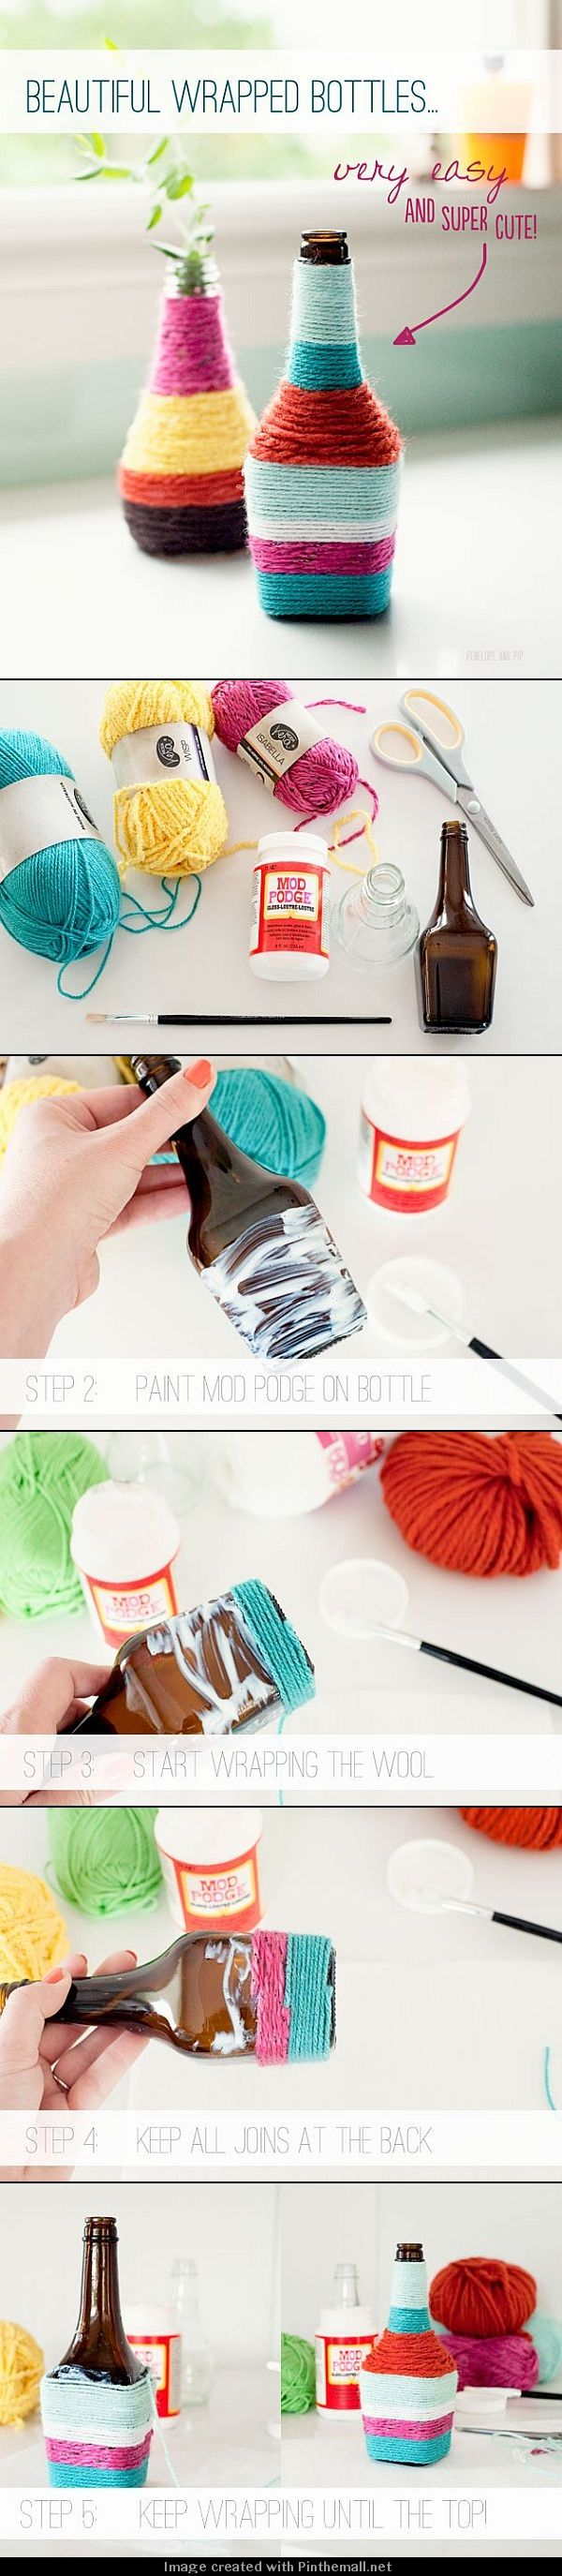 DIY HOME DECOR AND INTERIOR: Beautiful Wrapped Bottles DIY